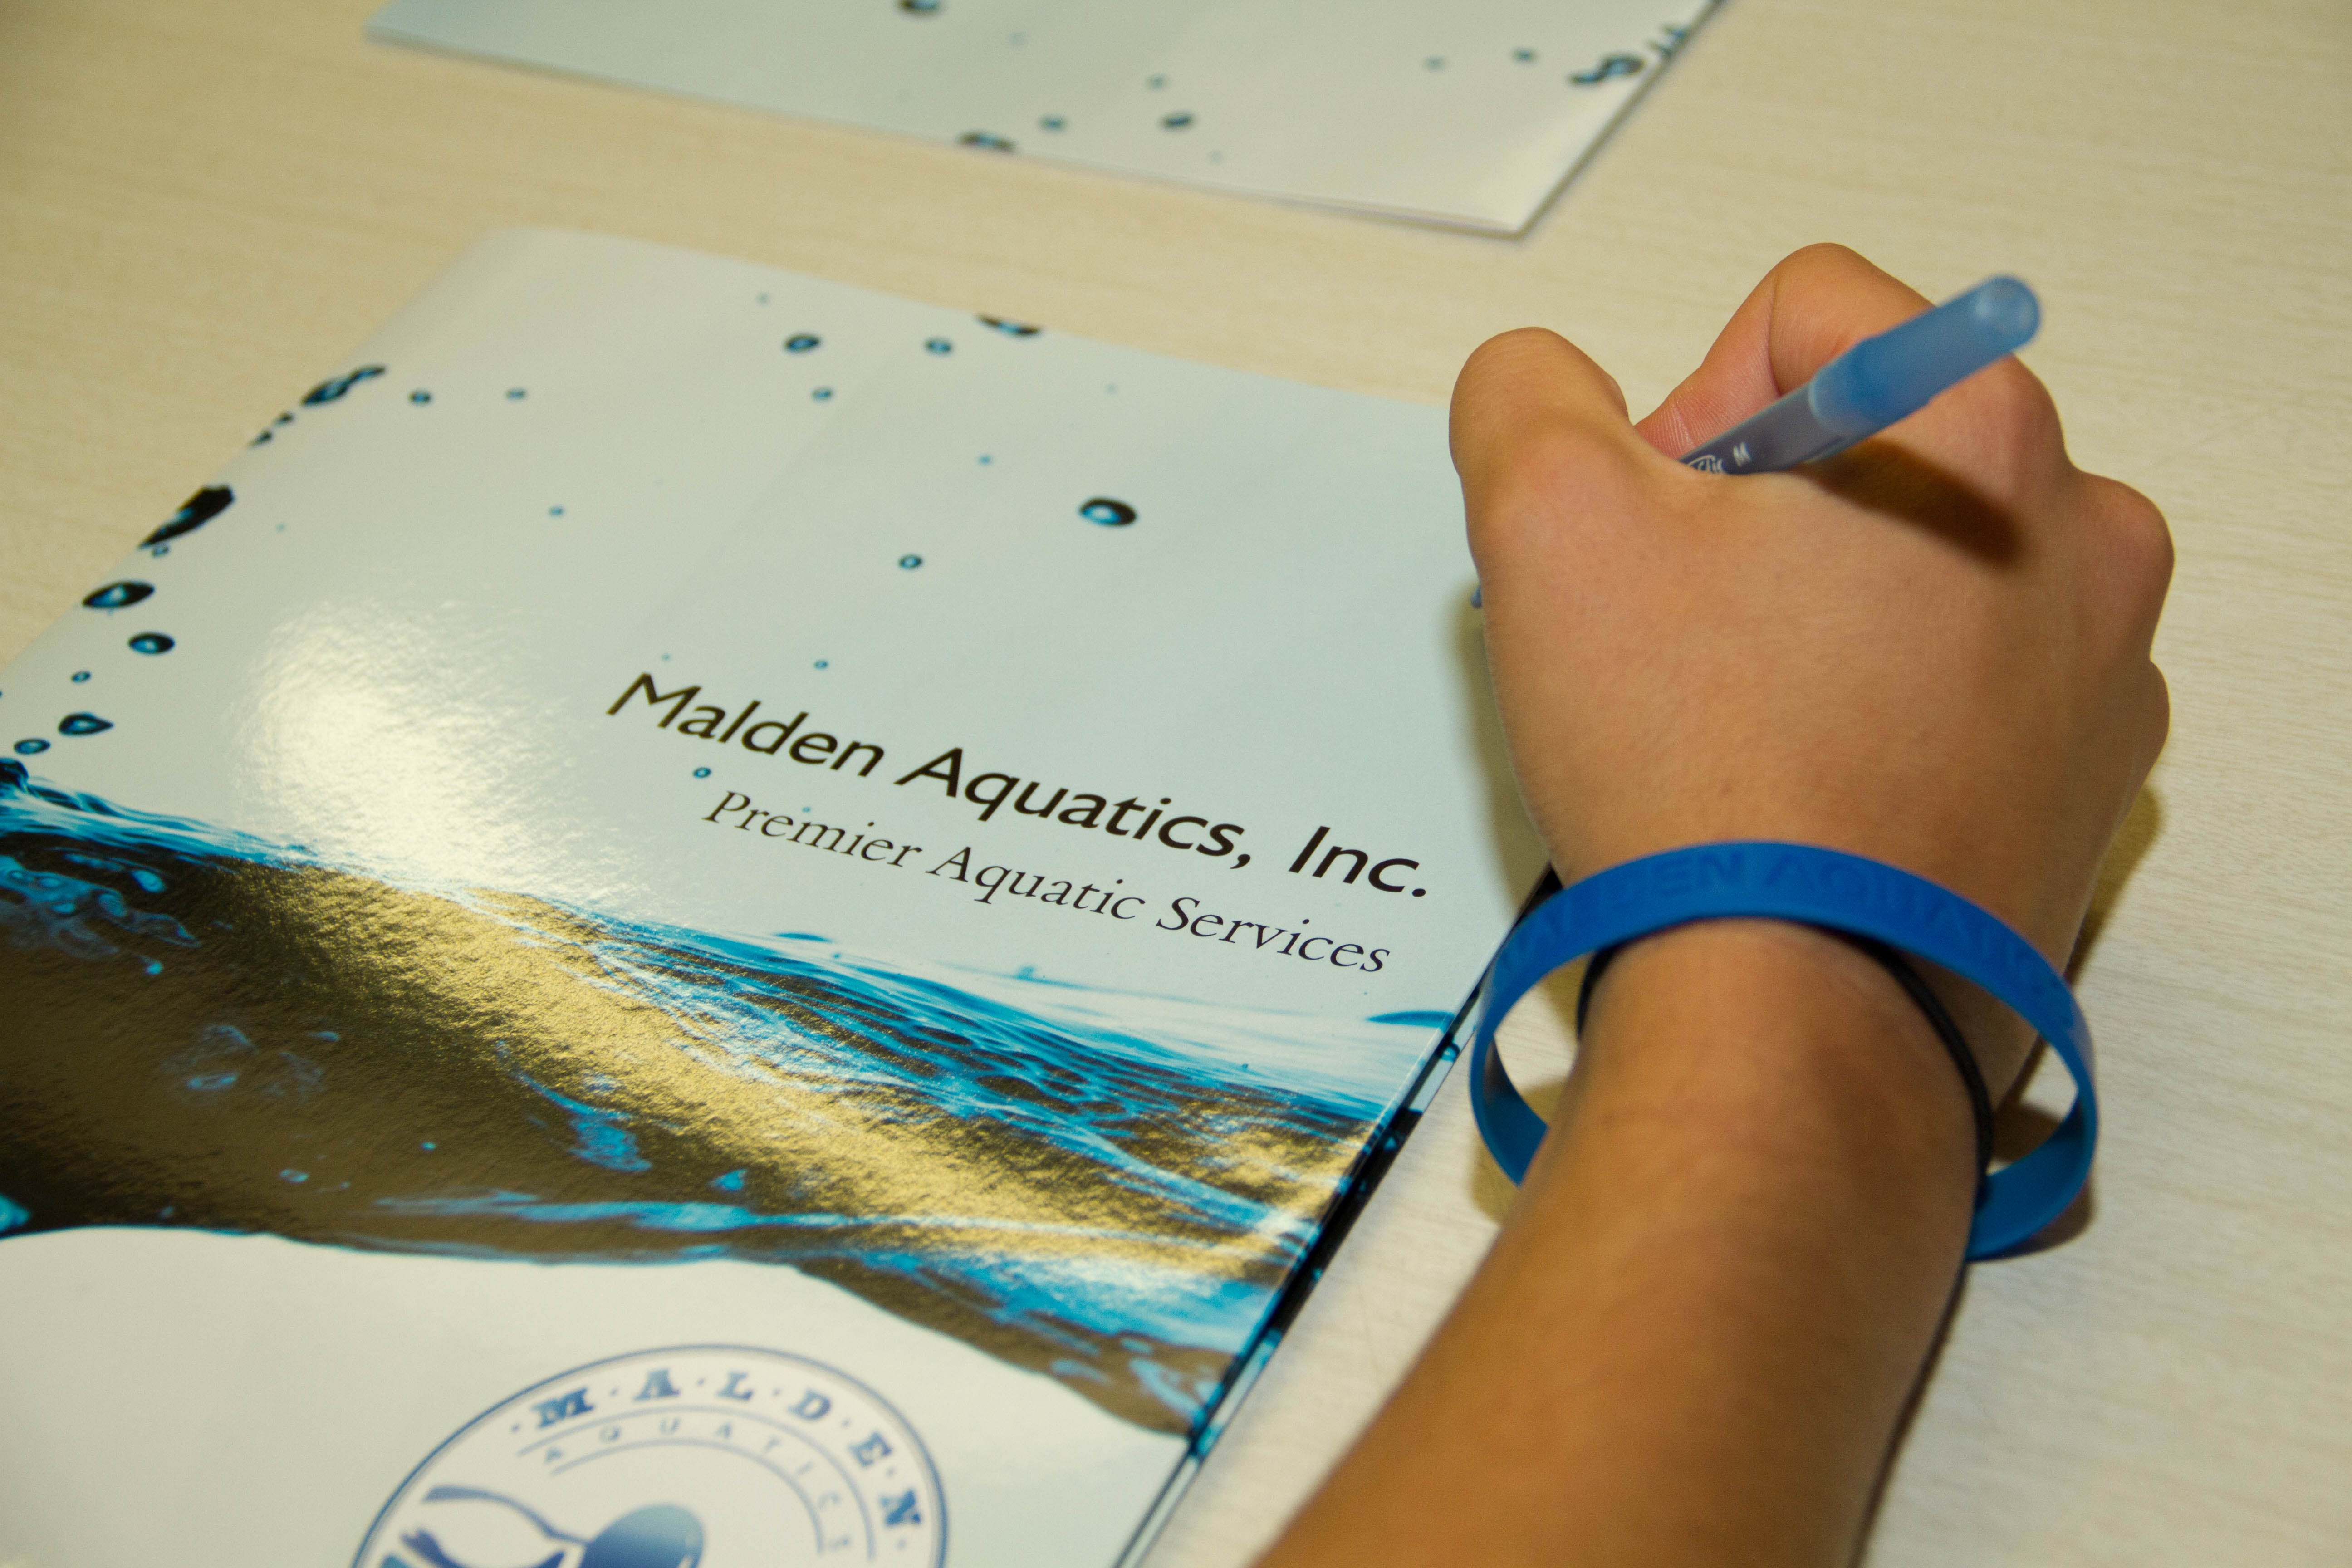 Malden Aquatics Services